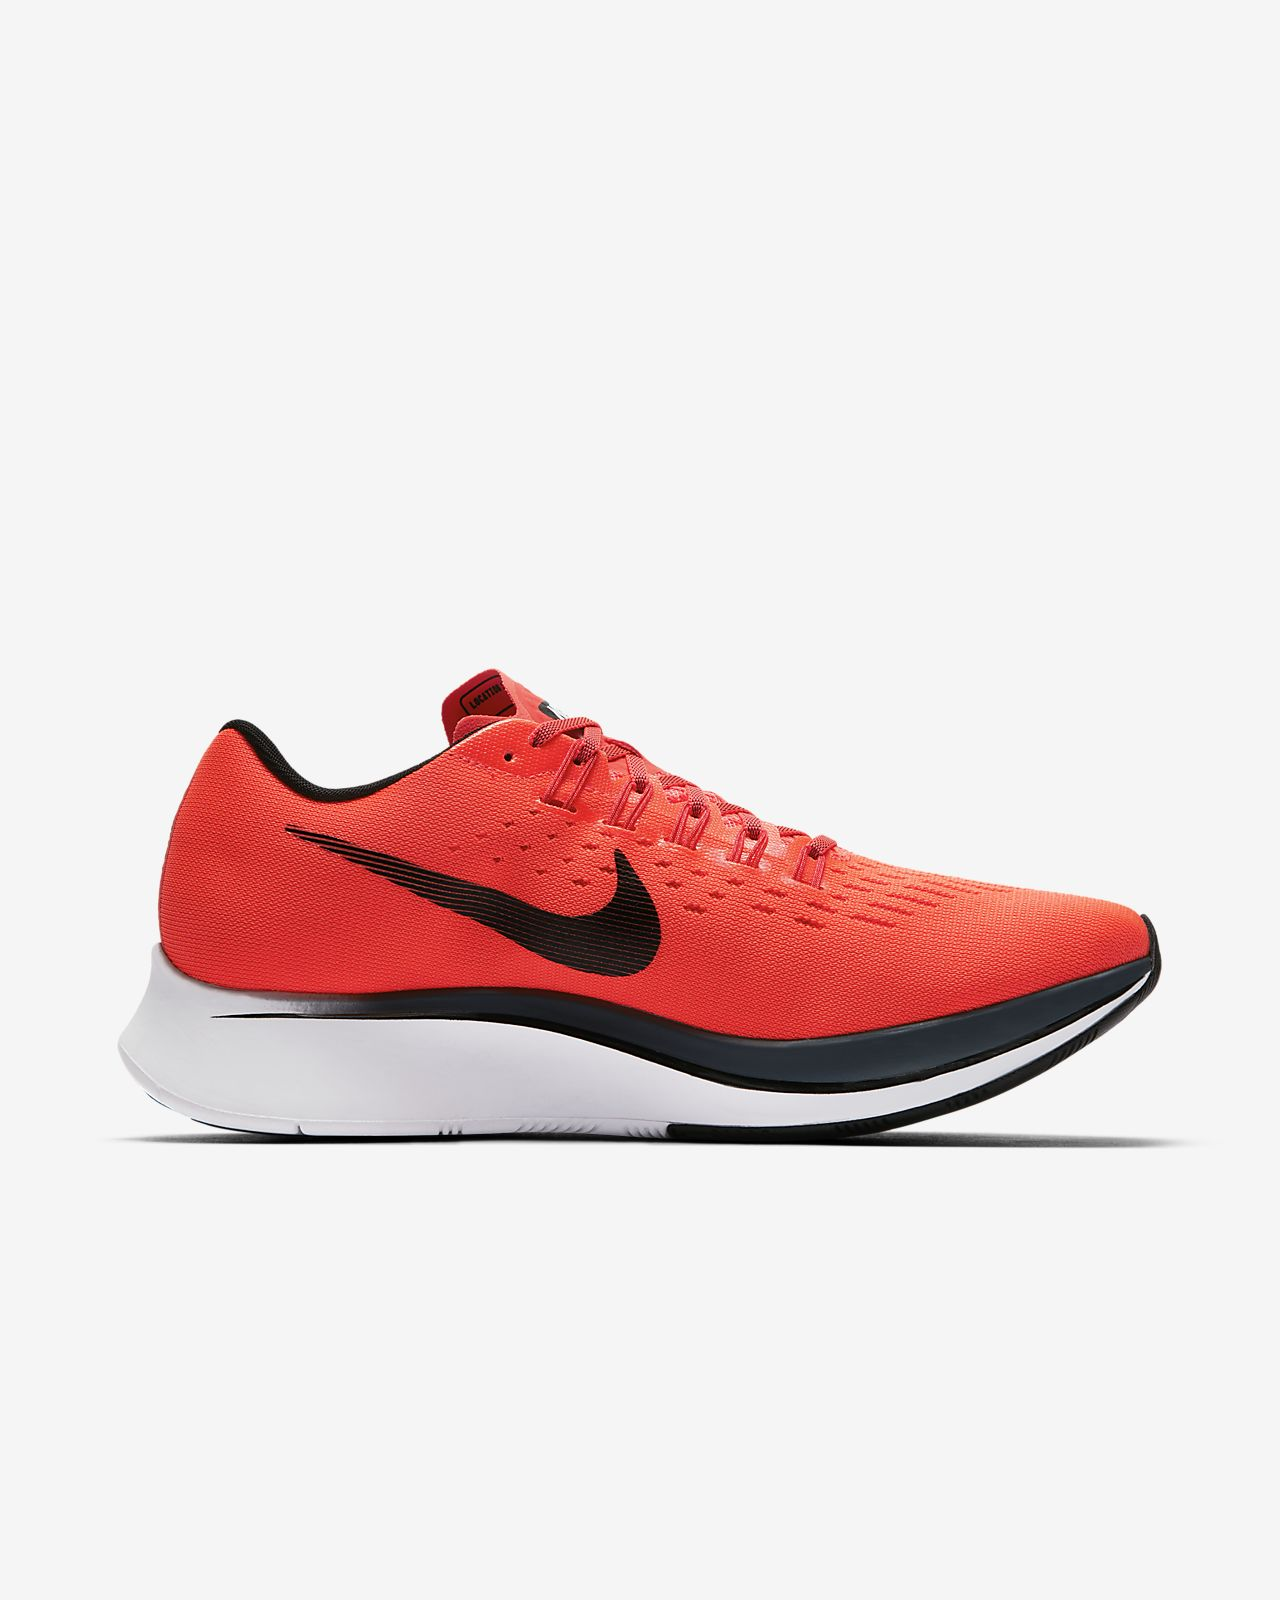 cb3376231b540 Nike Zoom Fly Men s Running Shoe. Nike.com AU